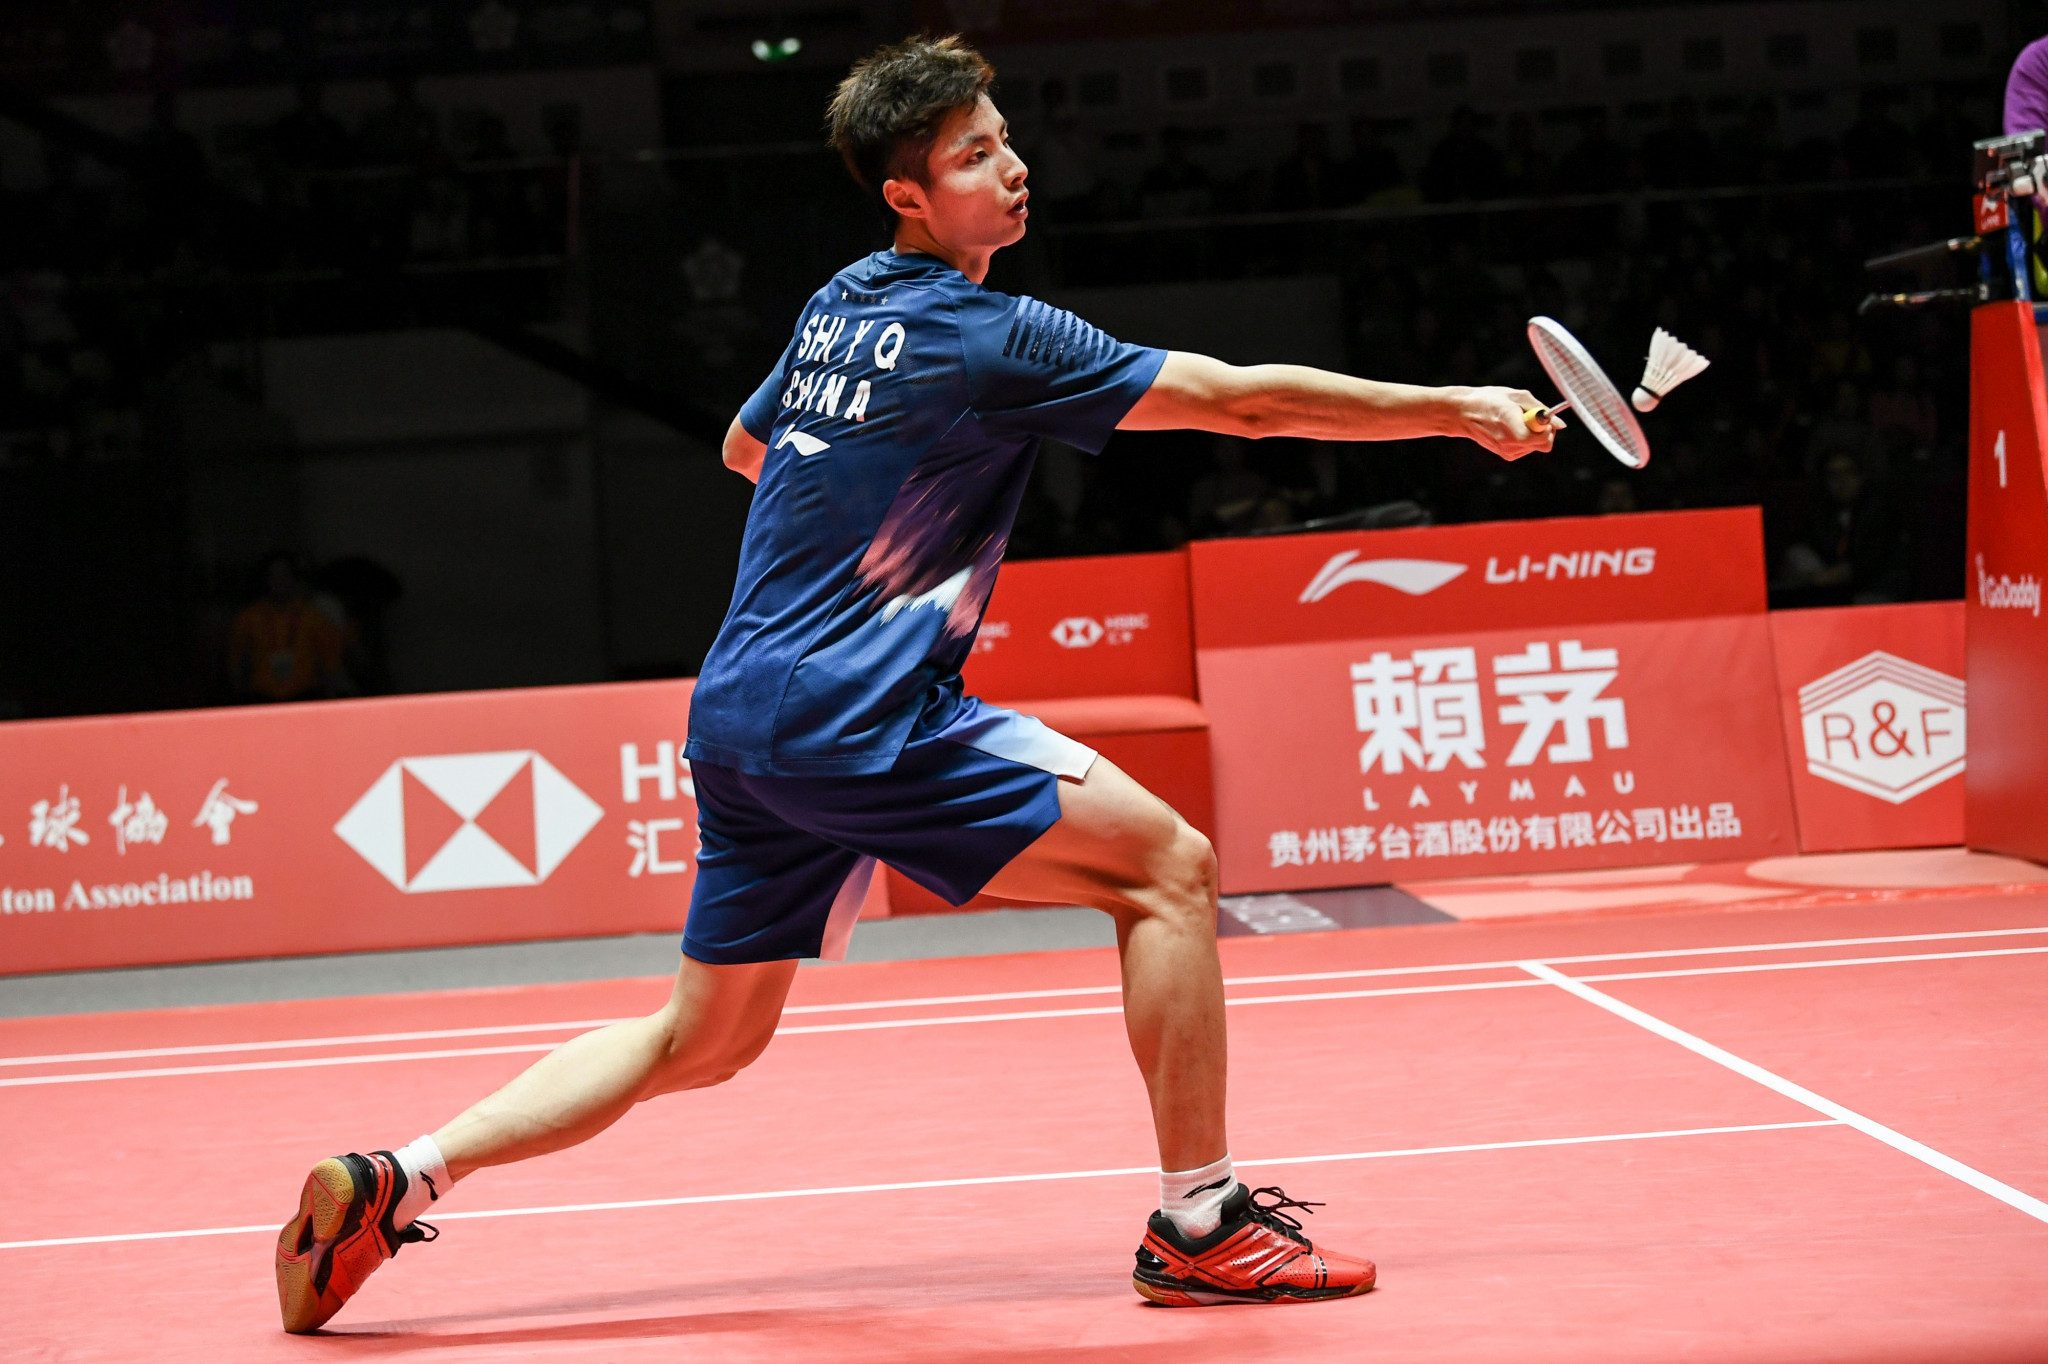 Former champion Shi knocked out of BWF Indonesia Masters by home favourite